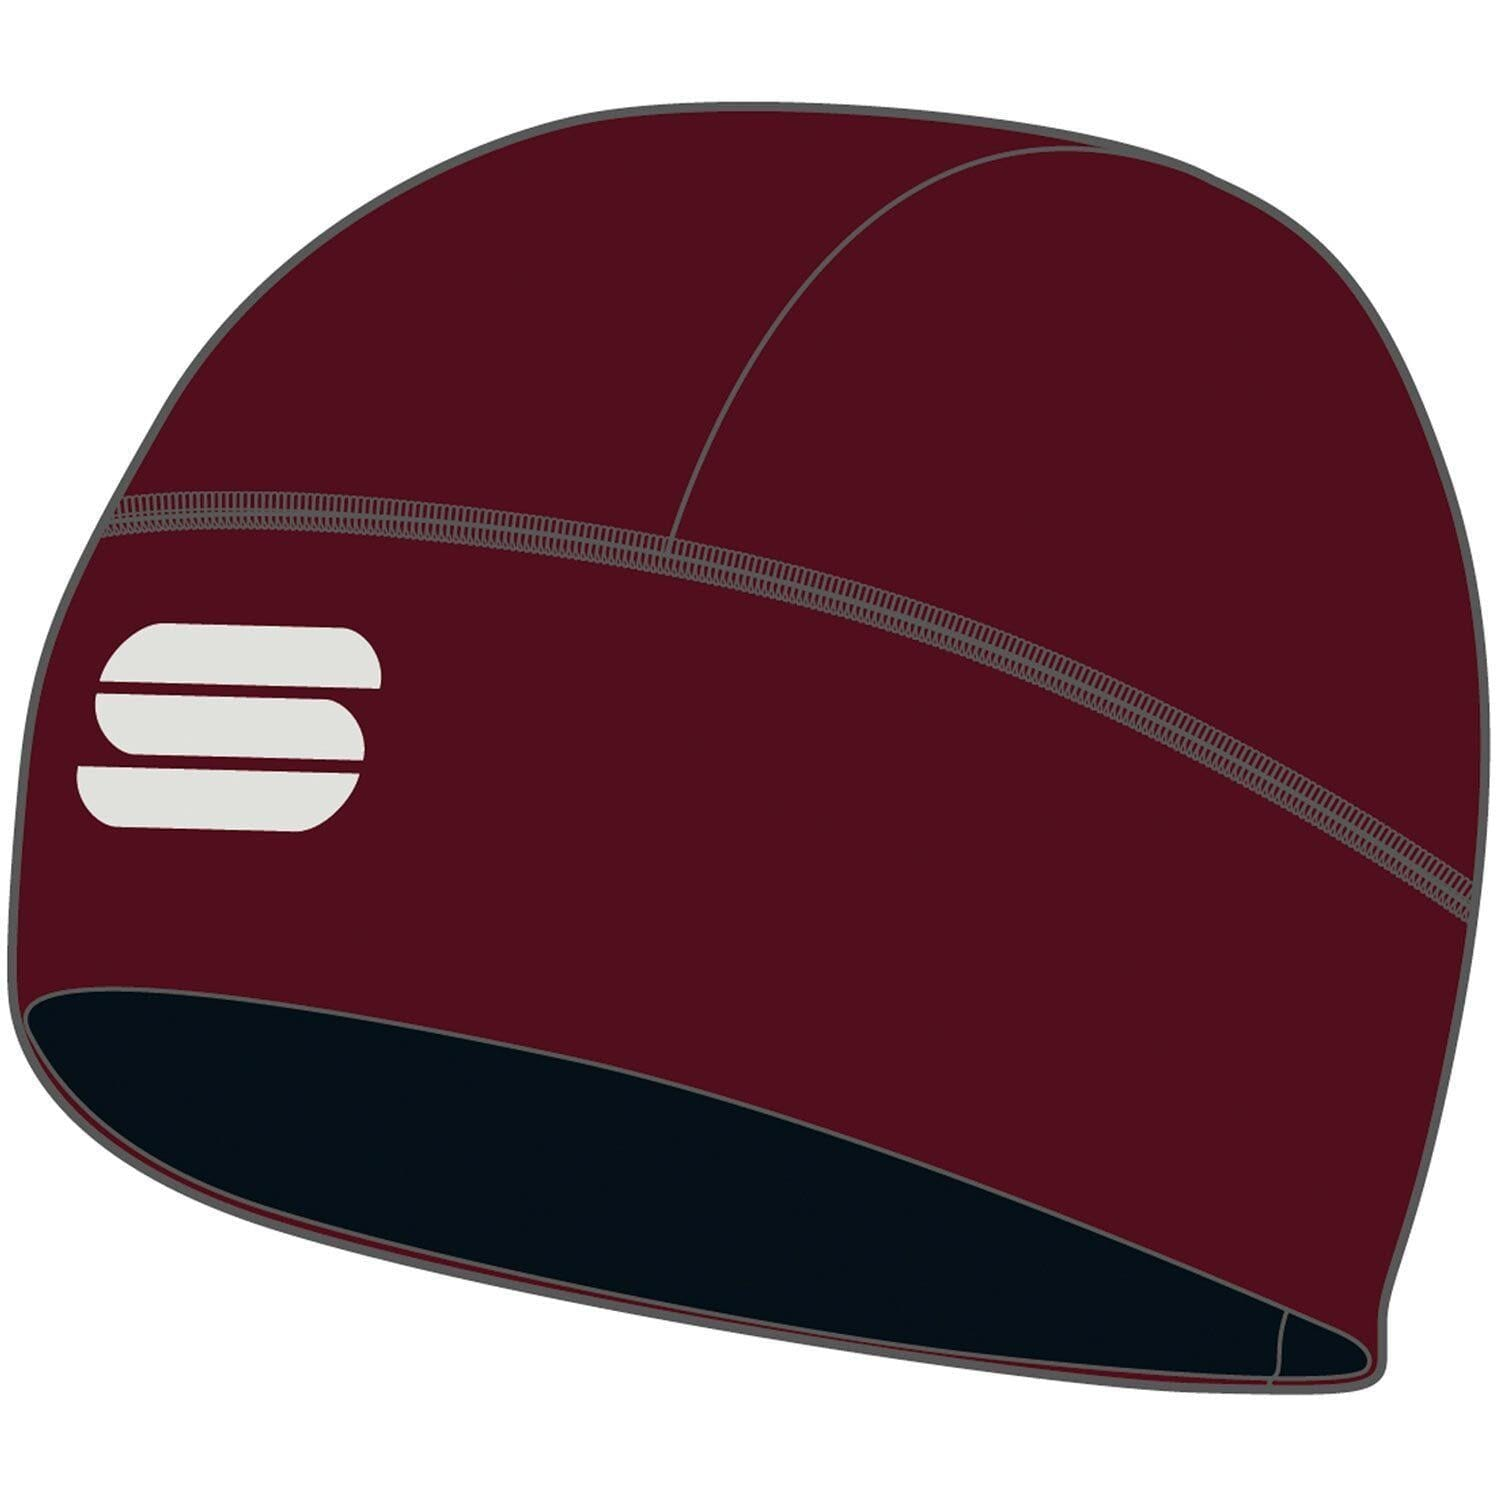 Sportful-Sportful Matchy Underhelmet-Red Wine-UNI-SF210756058-saddleback-elite-performance-cycling